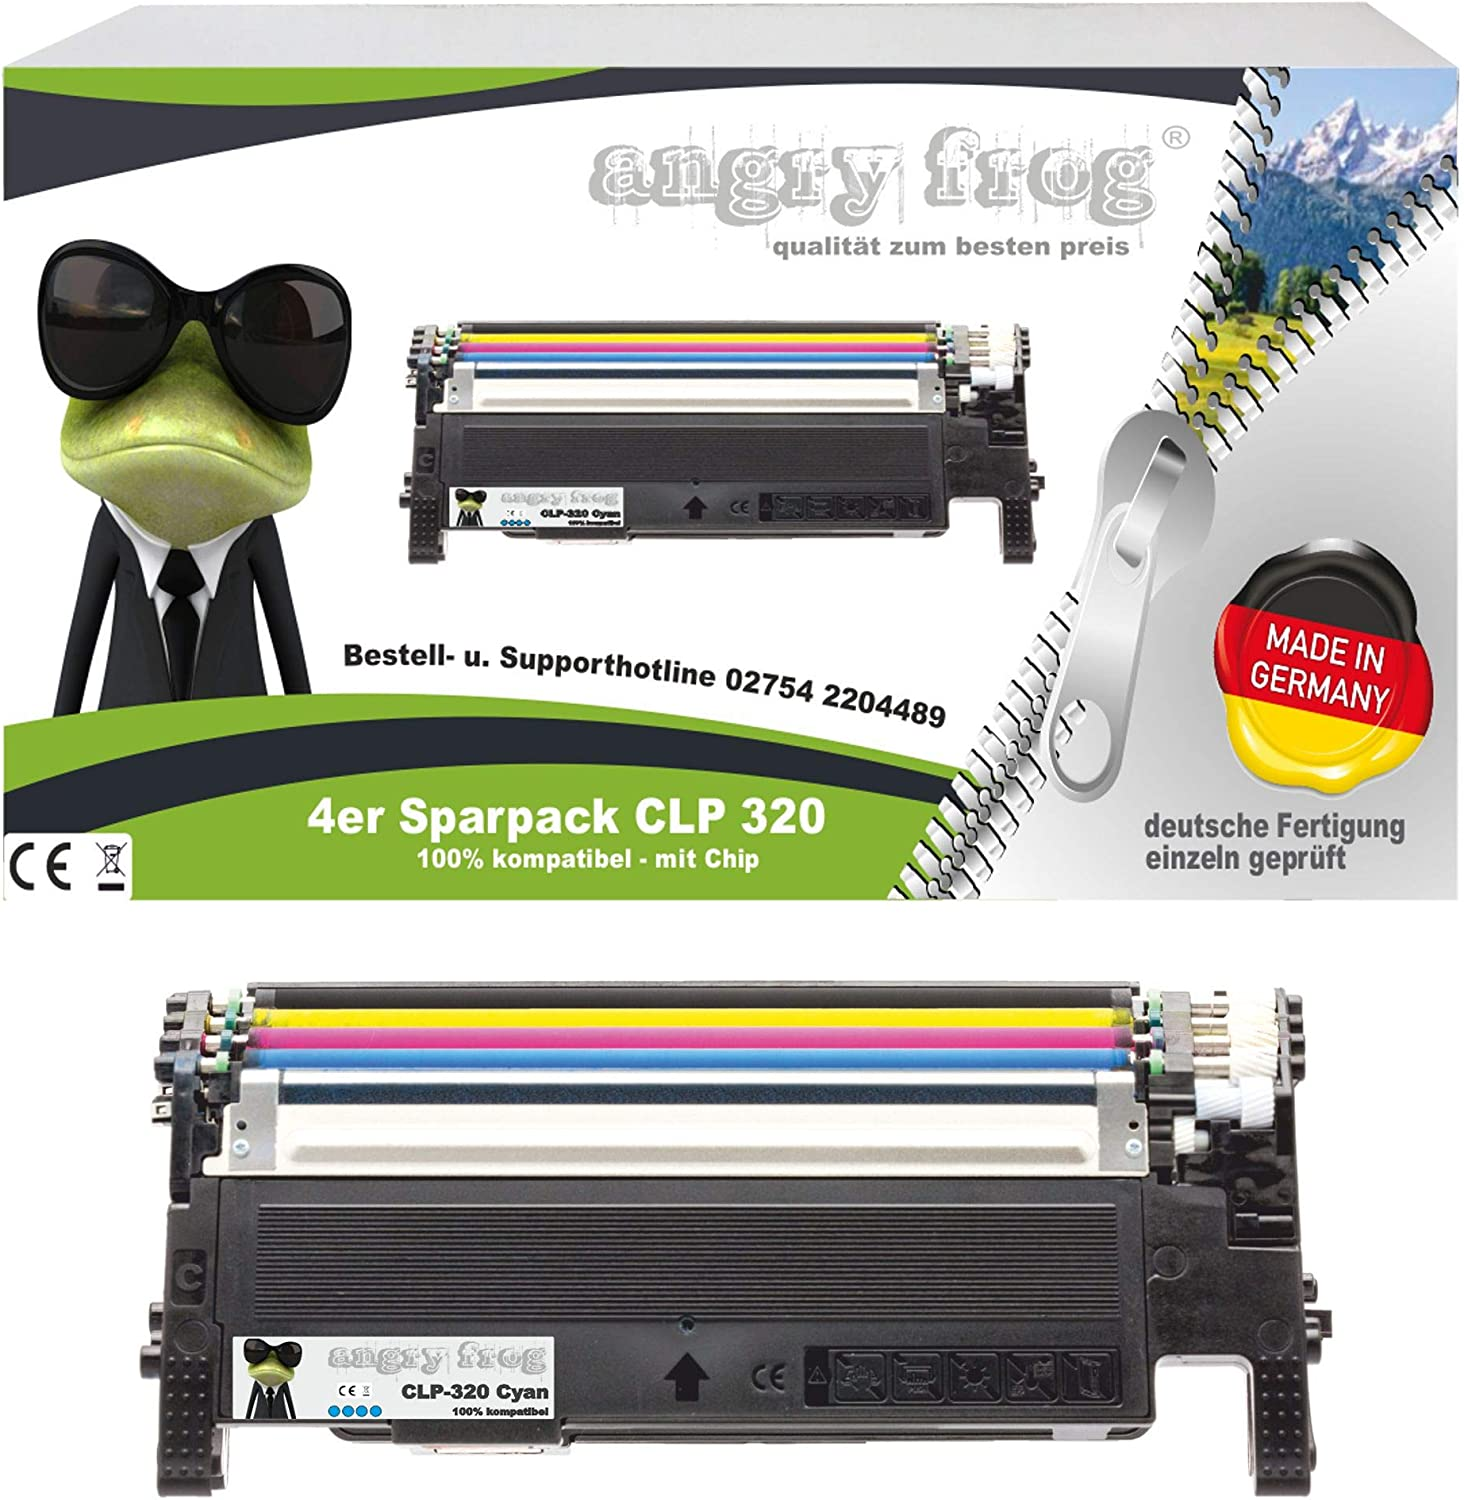 4 X Toner Made In Germany To Replace Samsung Clp320 Clp325 Clt K4072s Clt C4072s Clt M4072s Clt Y4072s Bürobedarf Schreibwaren